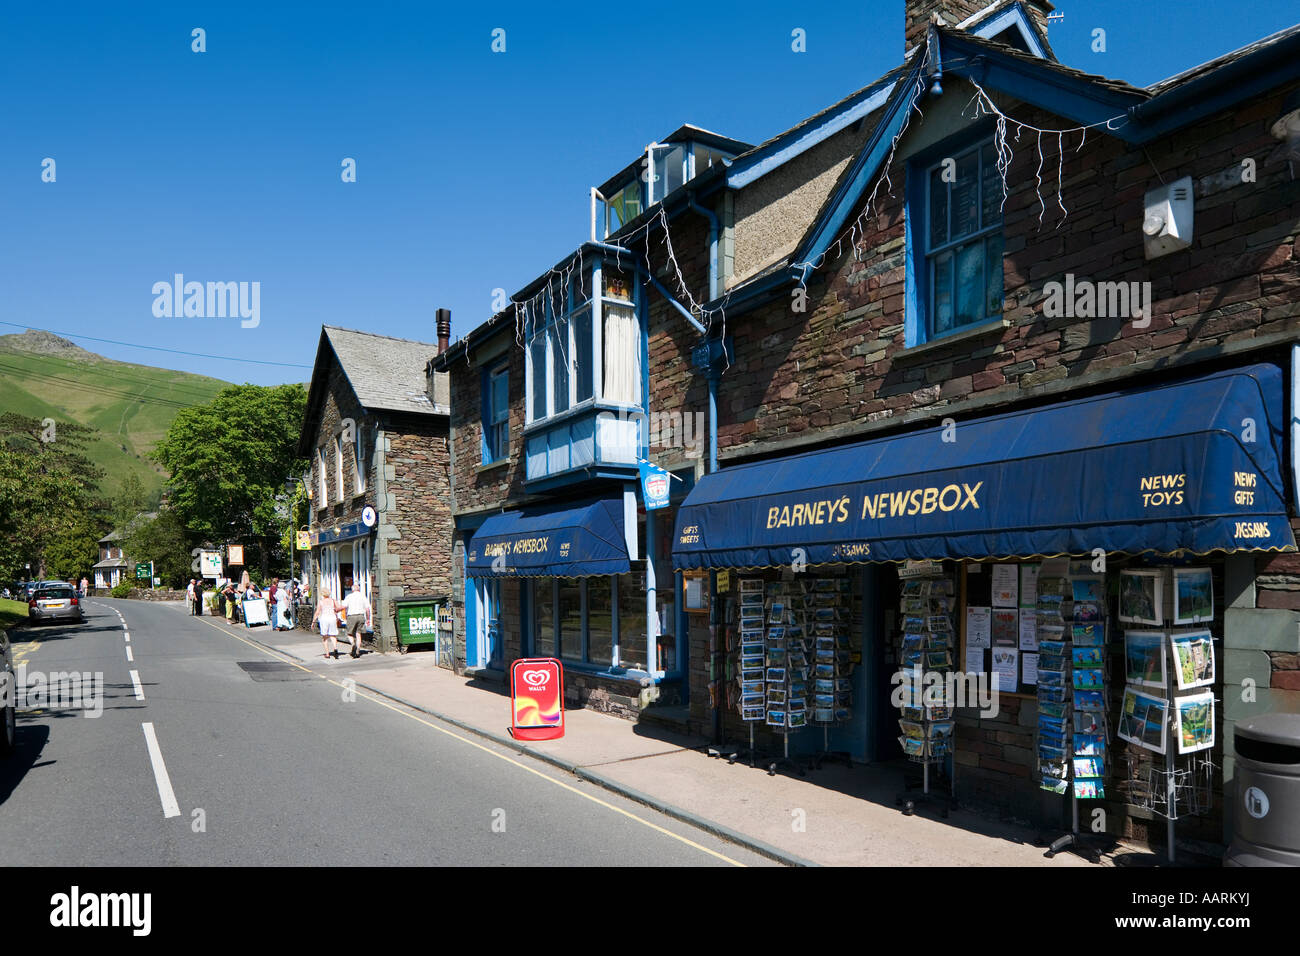 Shops in Village Centre, Grasmere, Lake District, Cumbria, England, UK - Stock Image